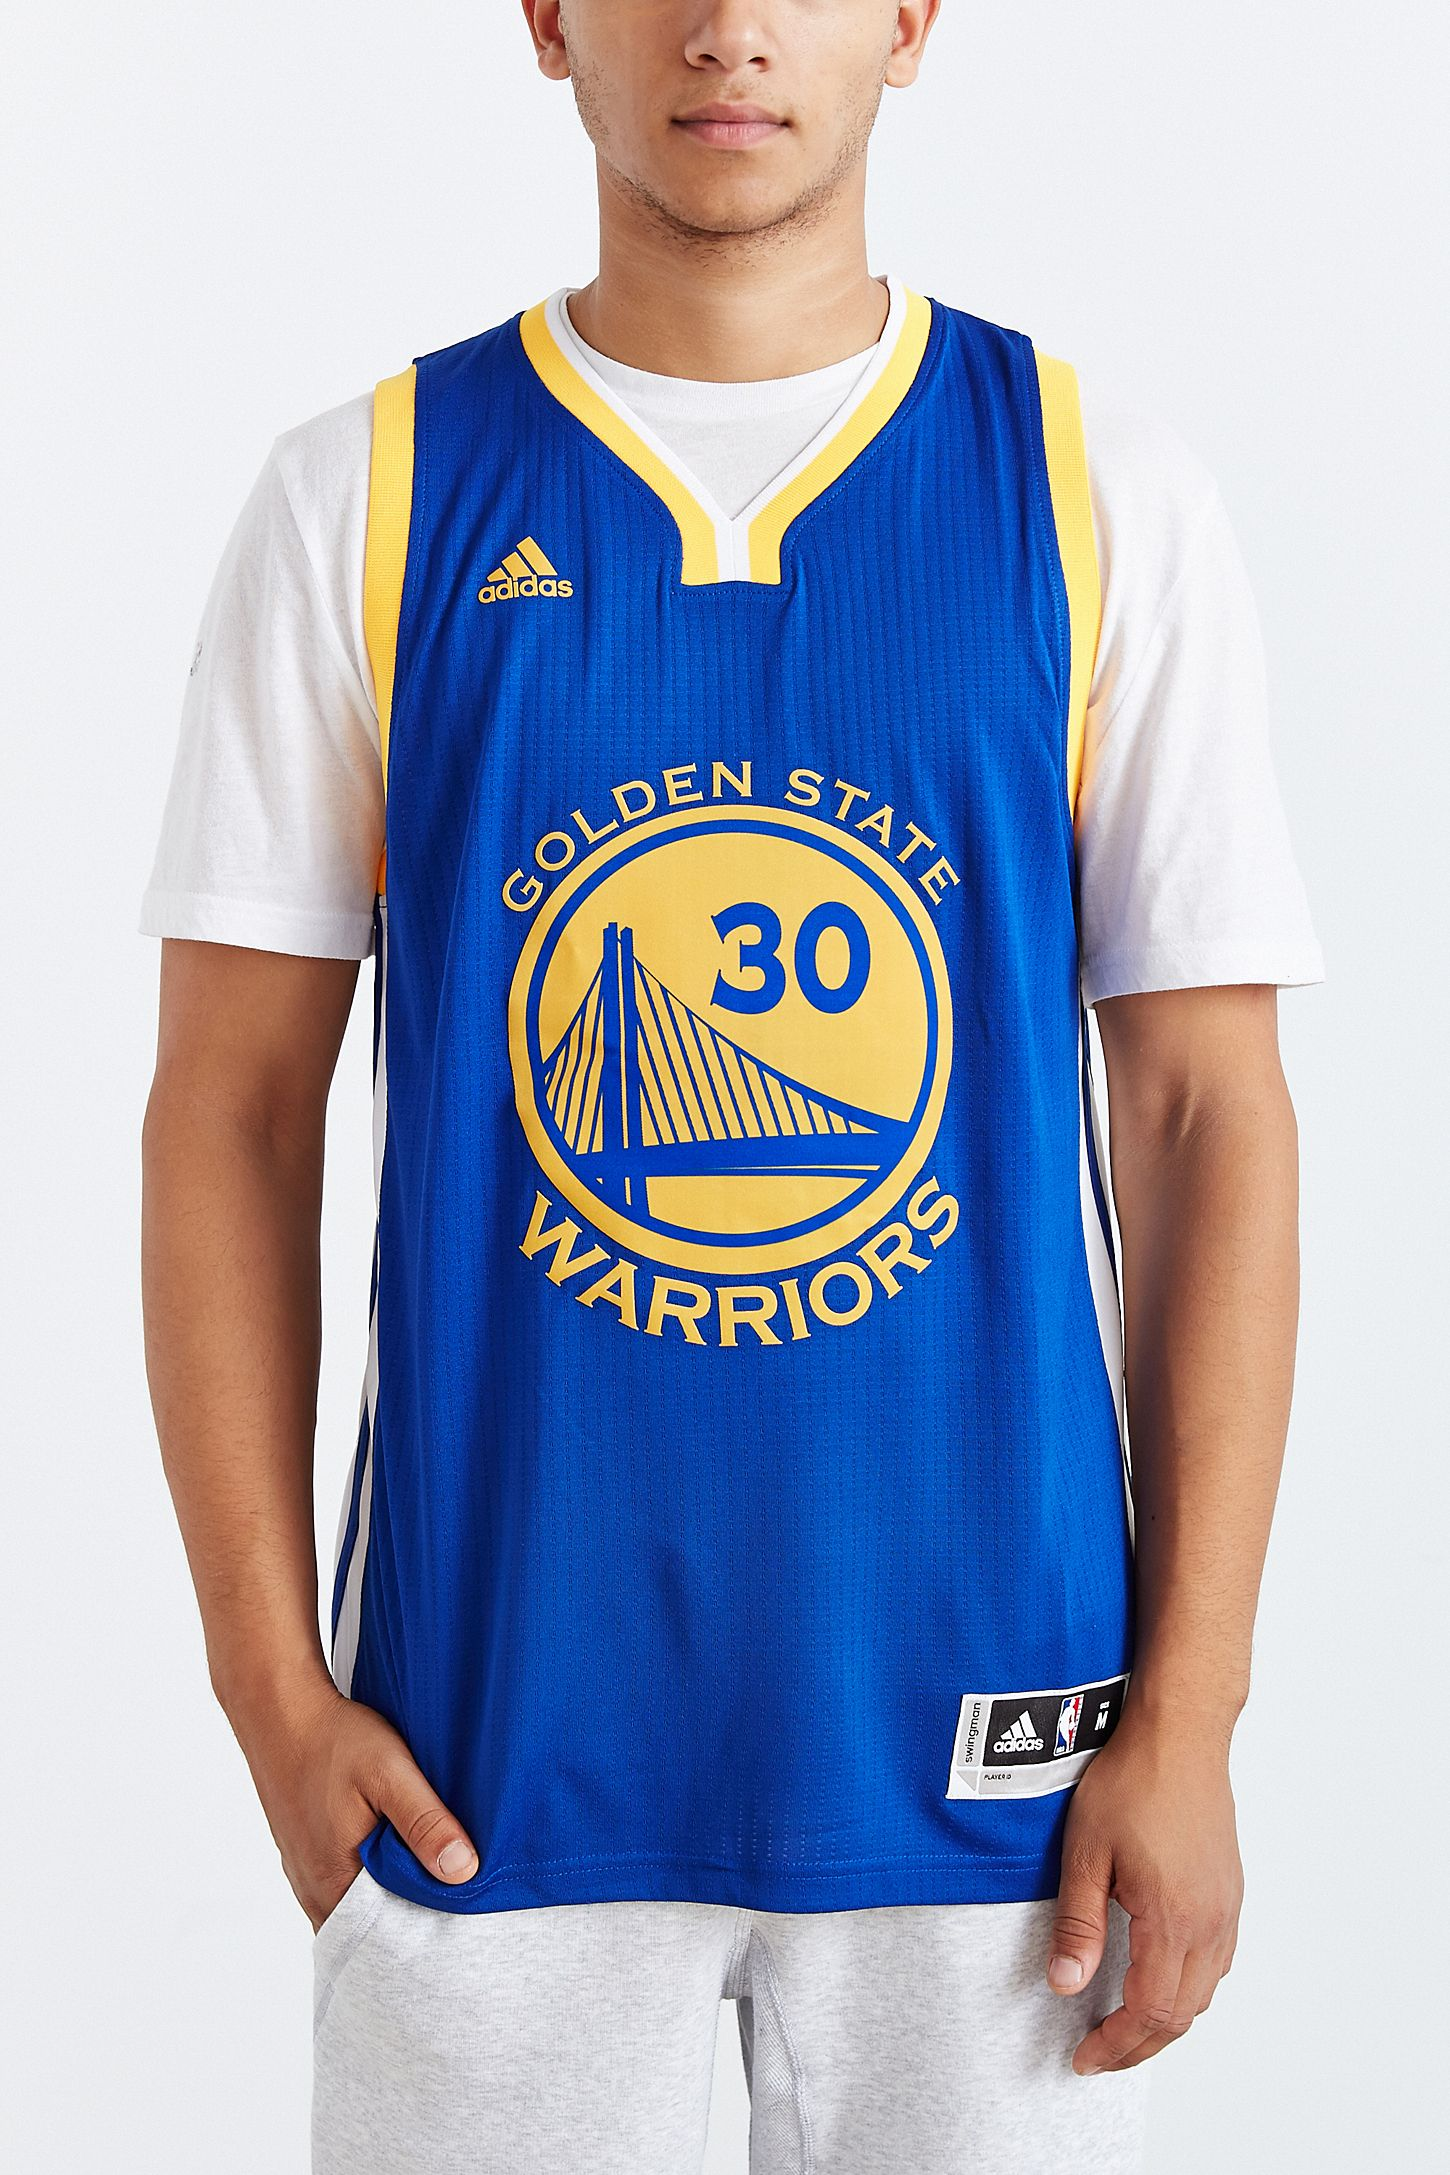 competitive price 55d57 7385e adidas Golden State Warriors Stephen Curry Away Jersey ...